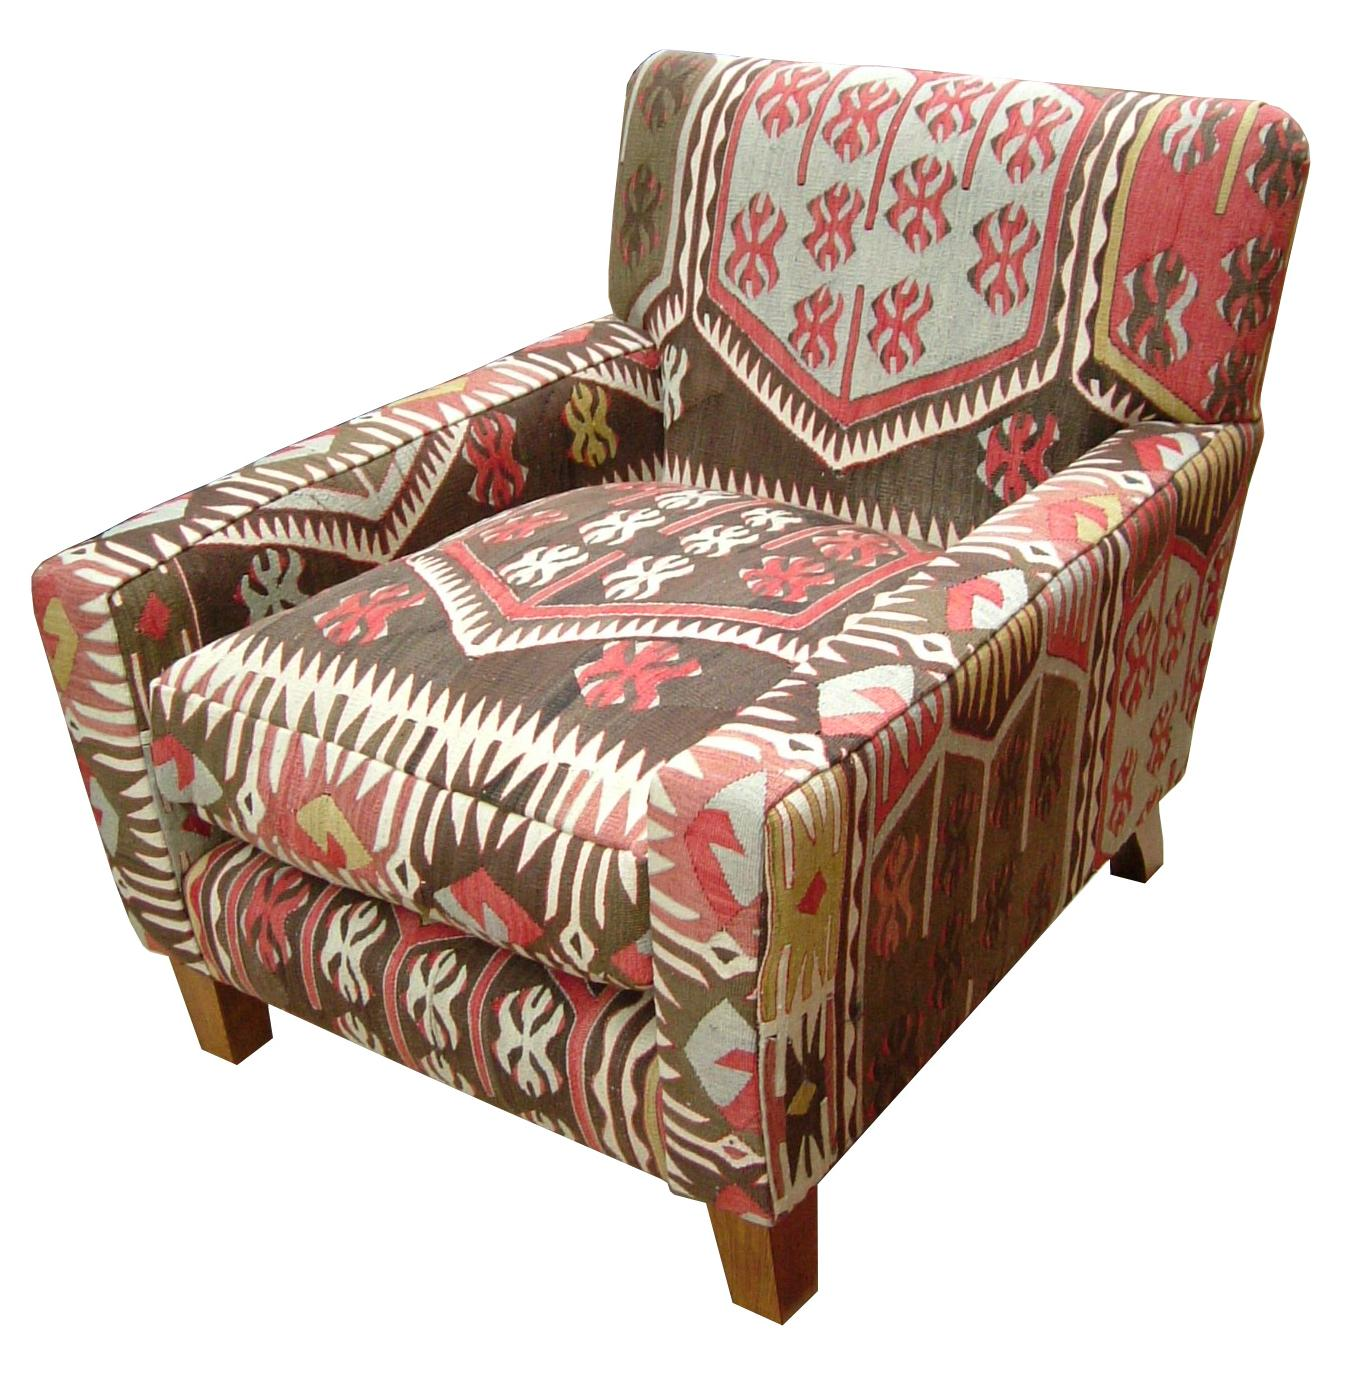 Swell Lewes Fixed Back Chair In Turkish Kilim Settle Home Download Free Architecture Designs Rallybritishbridgeorg